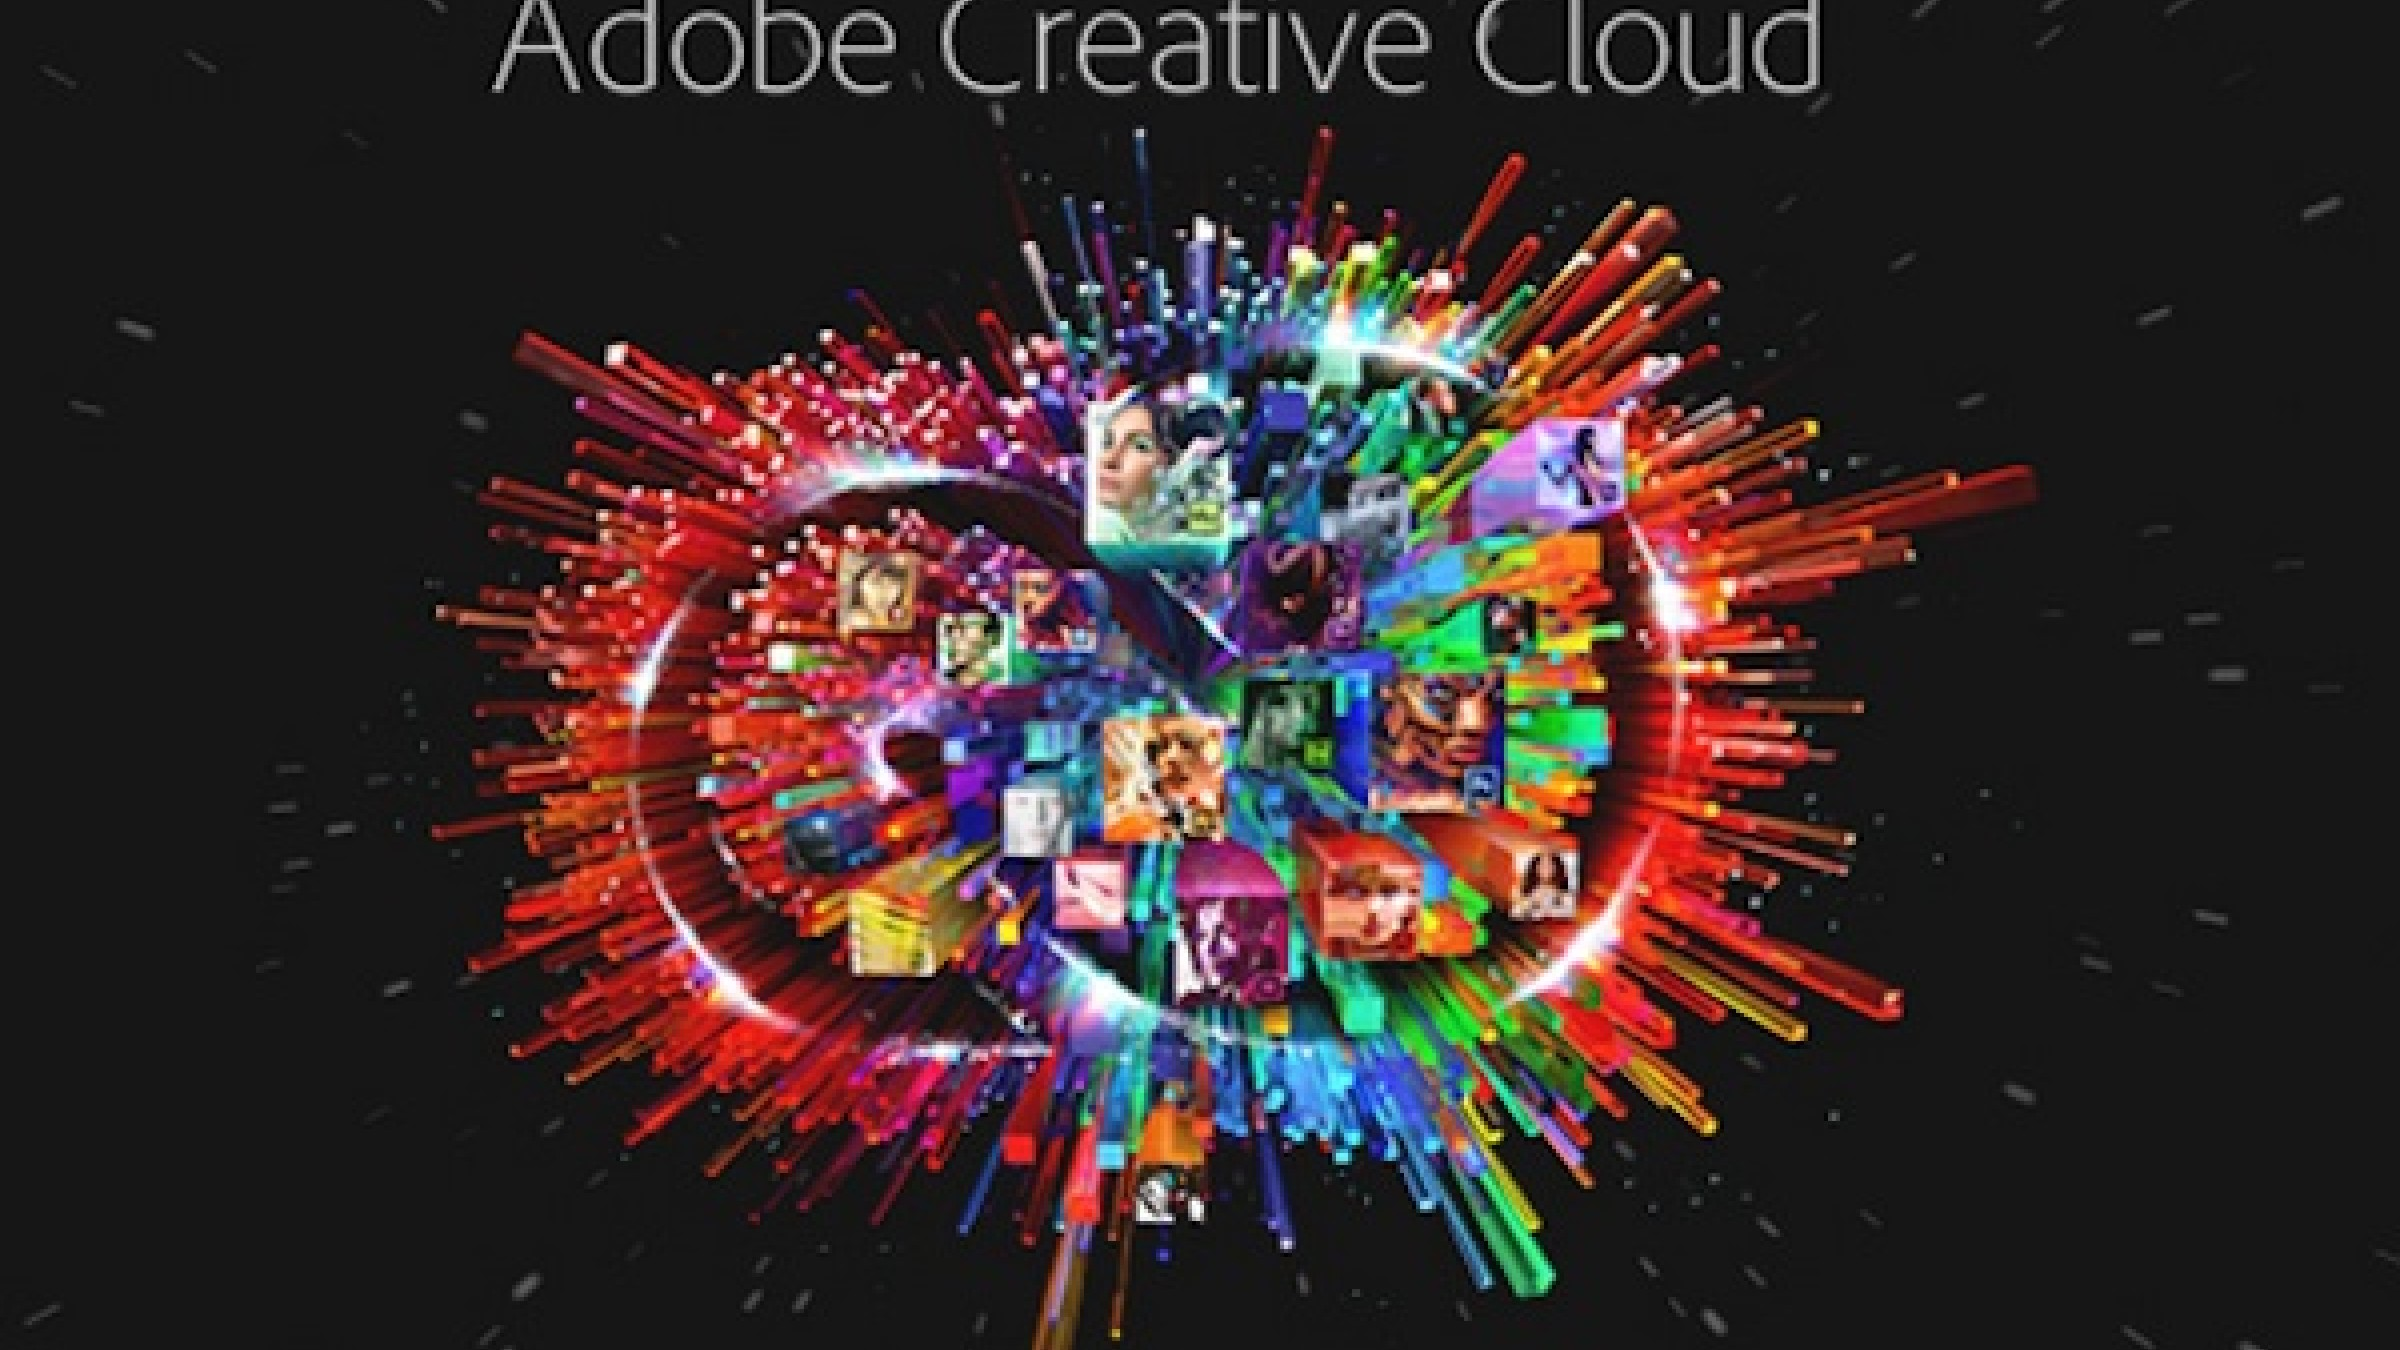 Adobe Extends 40% Discount on Creative Cloud to June 2013